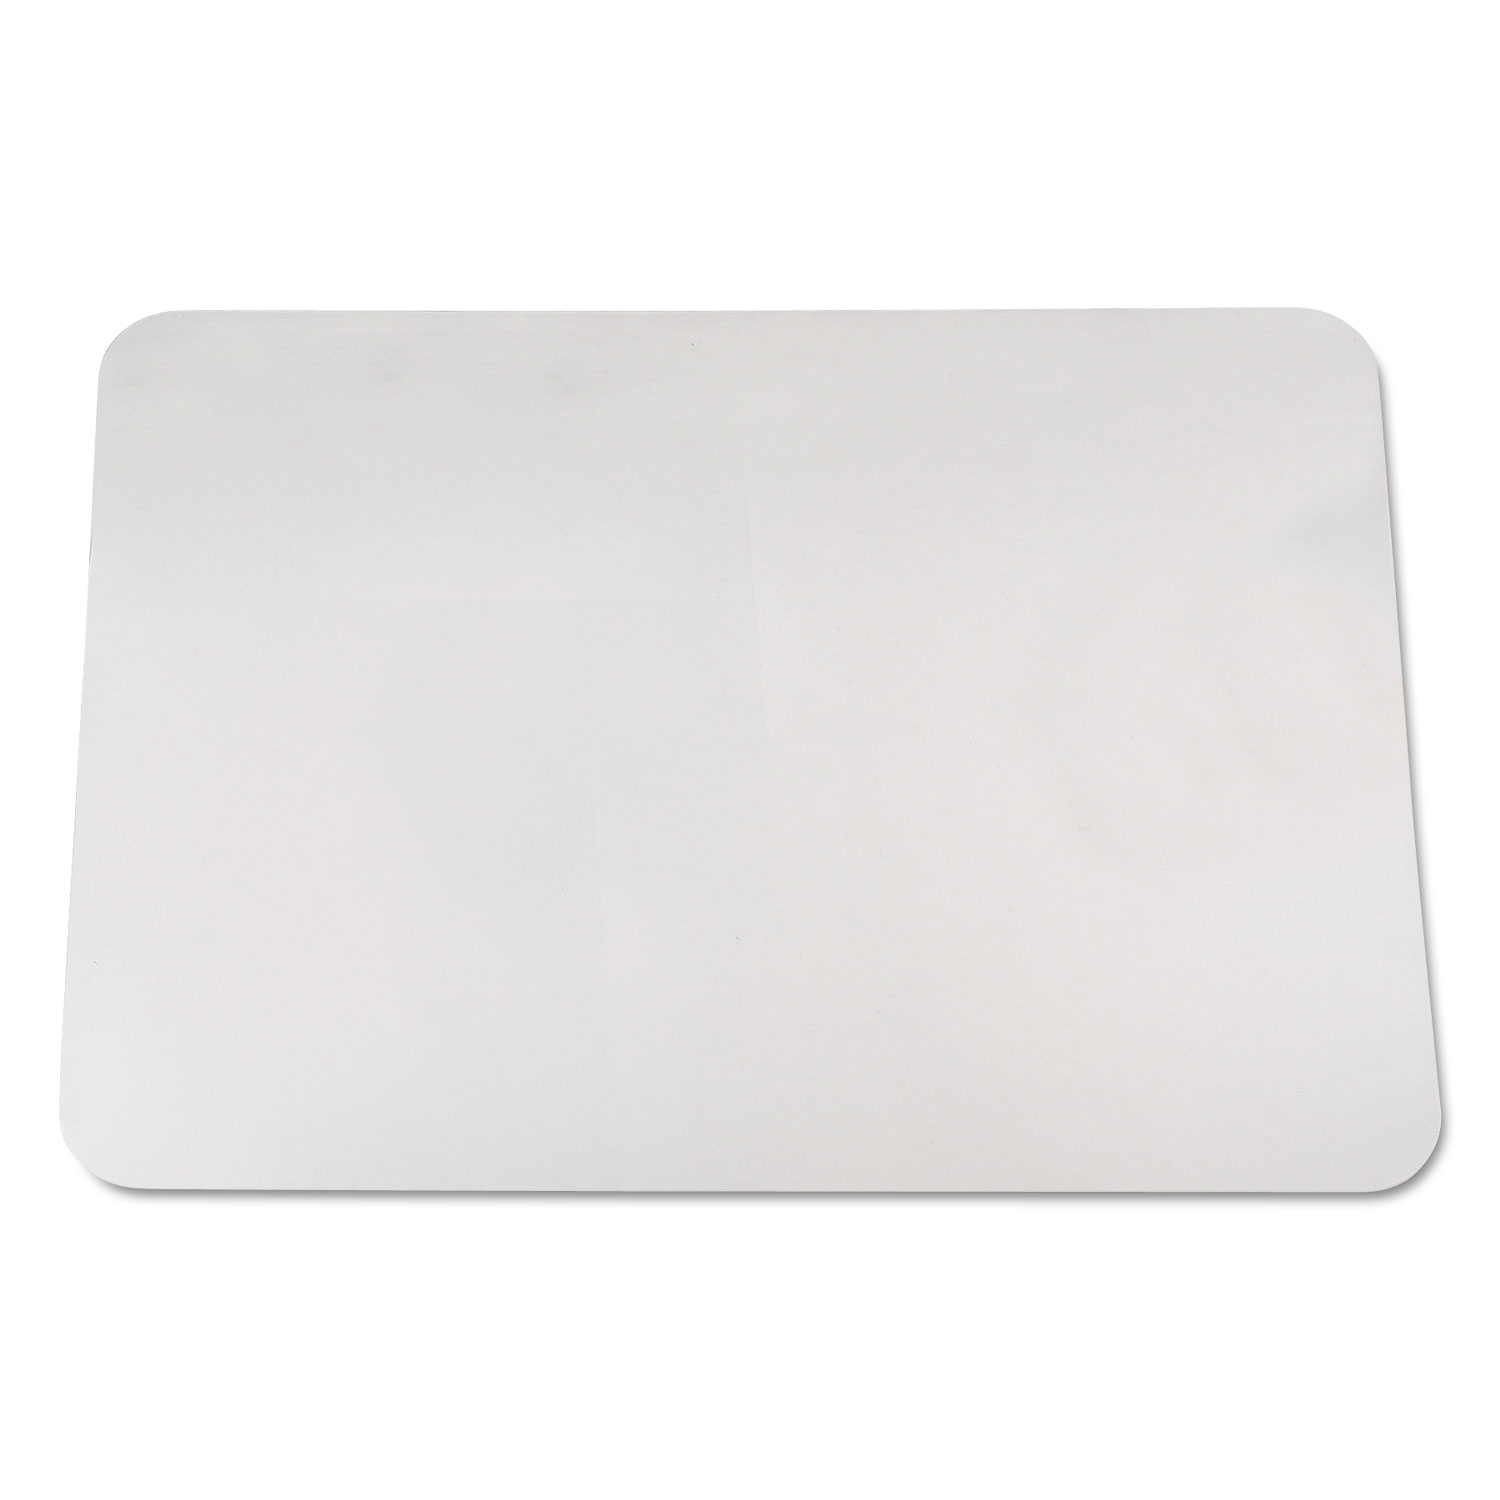 Krystalview Desk Pad With Microban 36 X 20 Clear Office